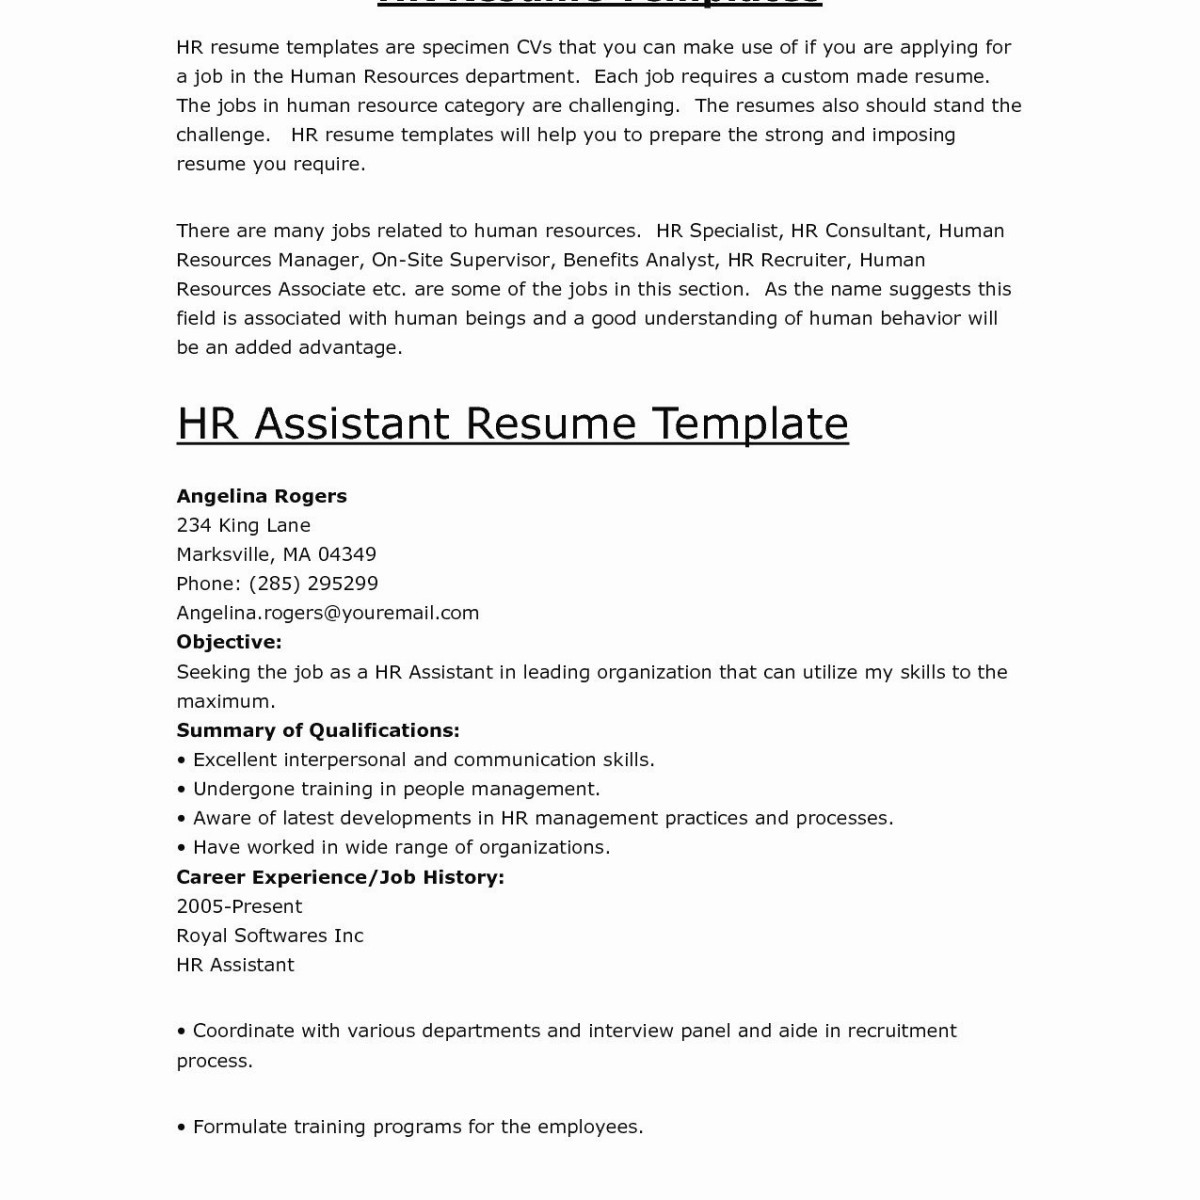 Babysitter Resume Description - 37 Charming Nanny Job Description for Resume H9a